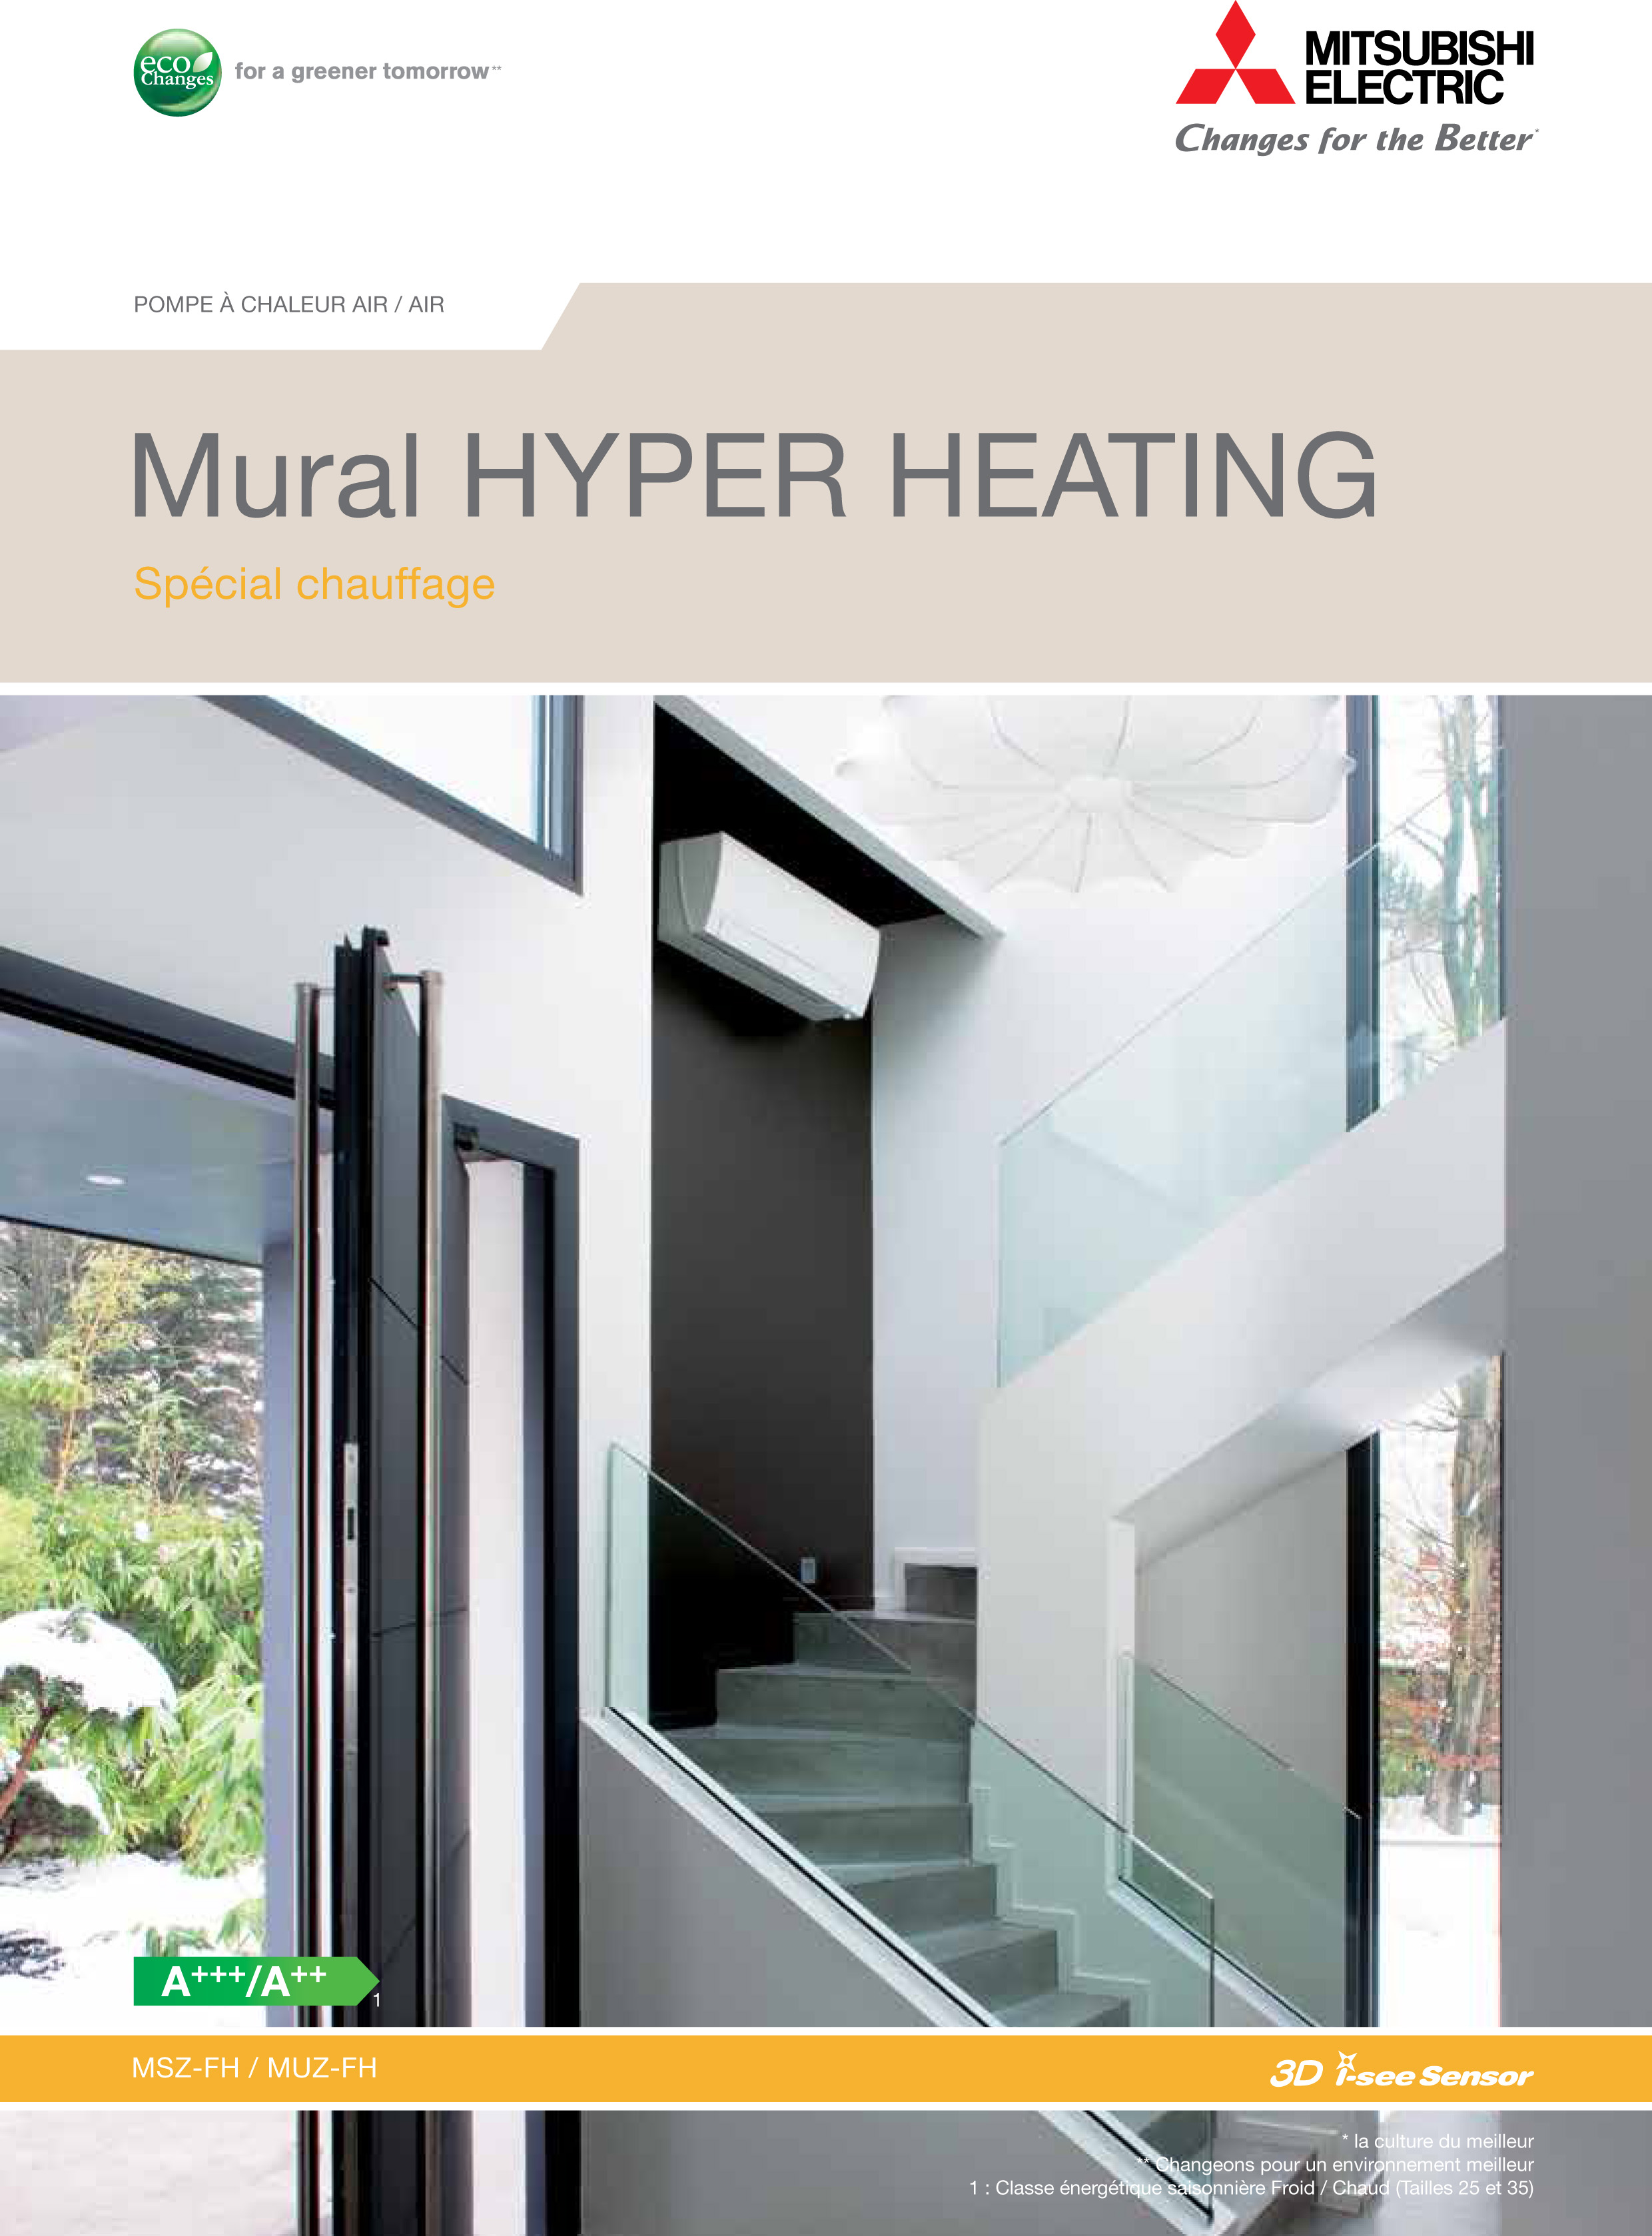 hyper heating mitsubishi-1